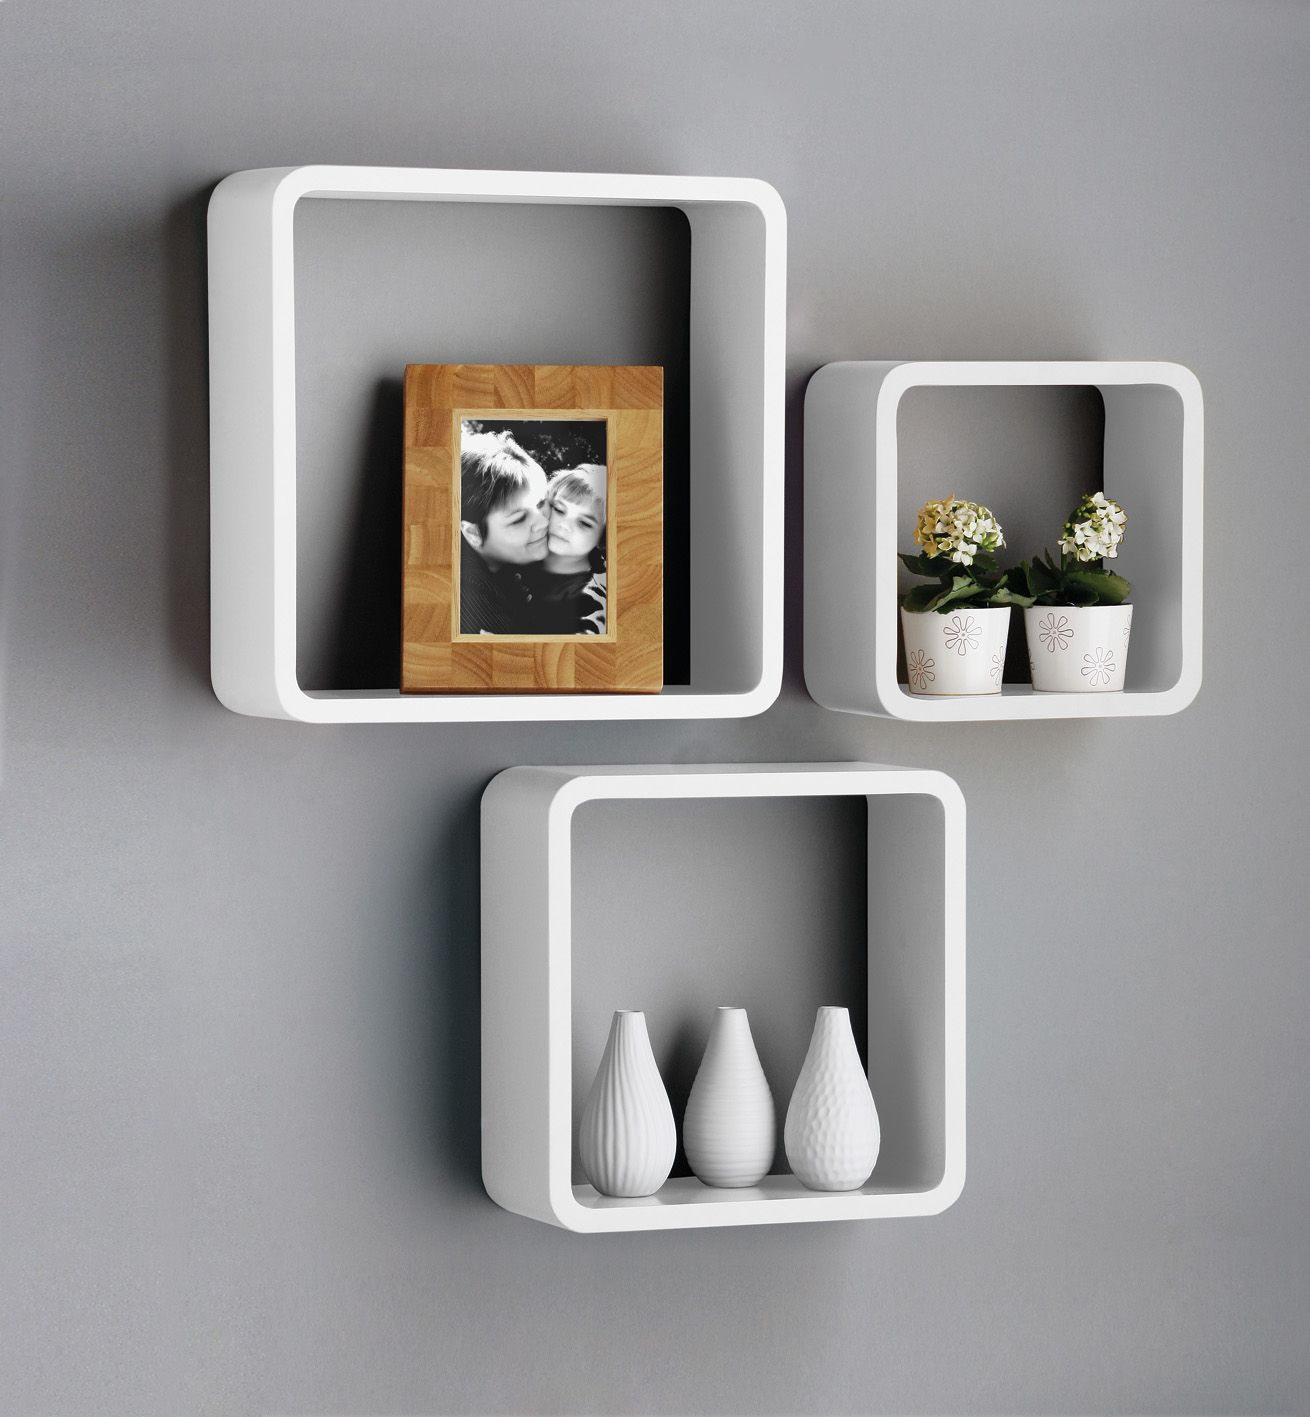 details about new set white black square floating cube wall rectangular shelf storage shelves cubes kitchen diy bathroom unit short mantle mantel target bookshelves small hanging